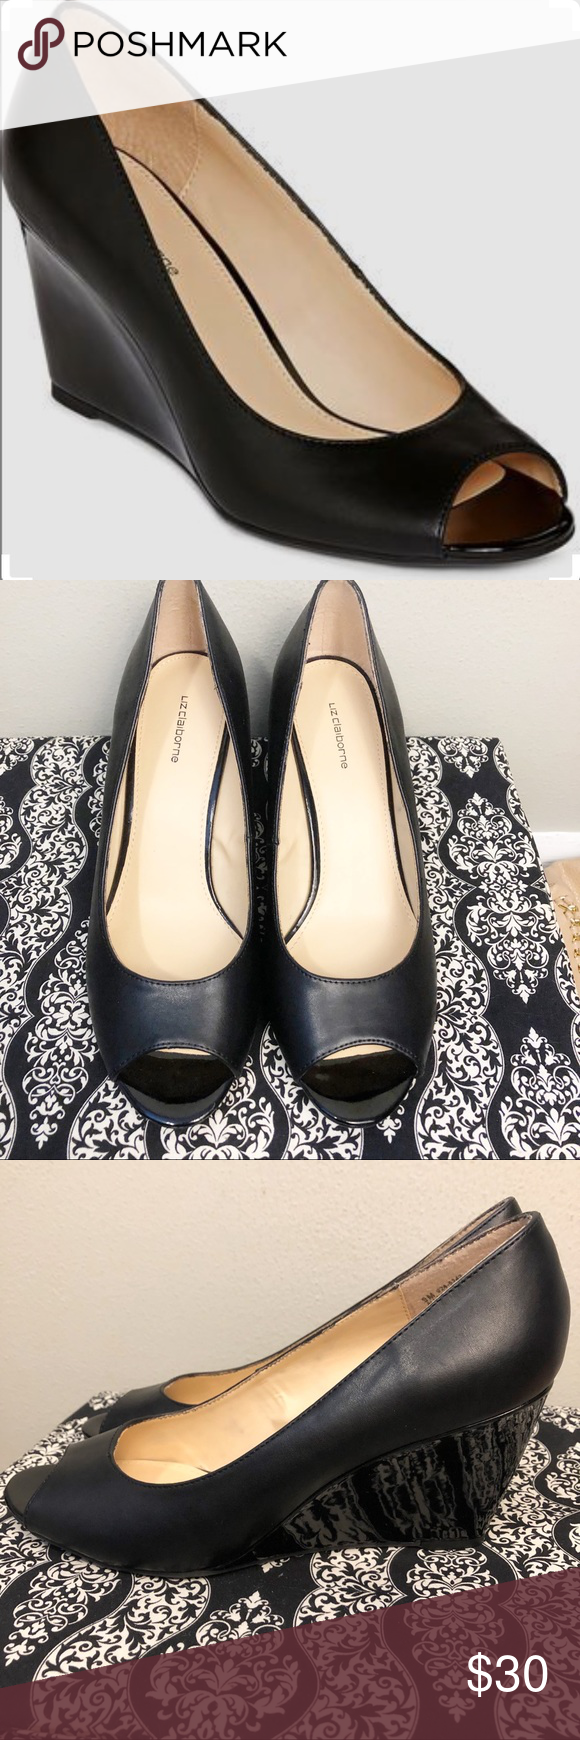 bee740b830 Liz Claiborne Paula Peep Toe Wedge Pumps NWOT Brand new without tags. Liz  Claiborne peep toe wedge pumps. Black leather. Size 9 Liz Claiborne Shoes  Wedges